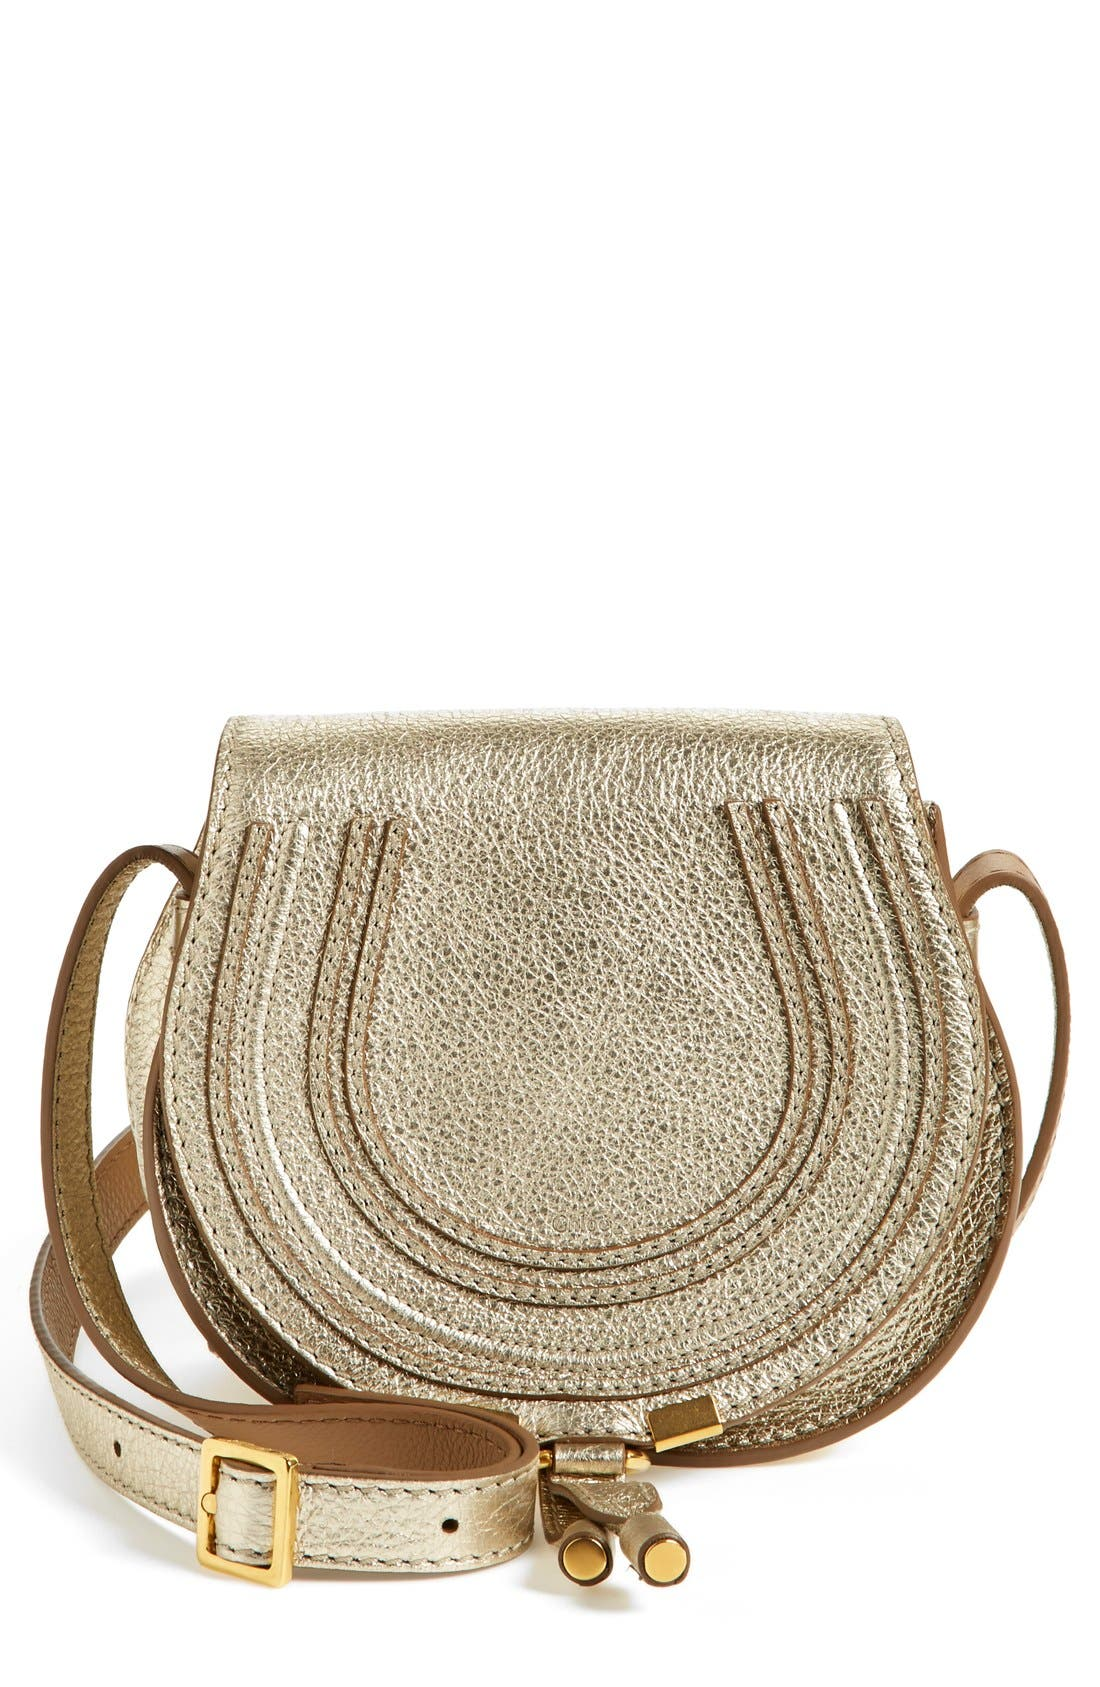 Main Image - Chloé 'Marcie - Small' Leather Crossbody Bag